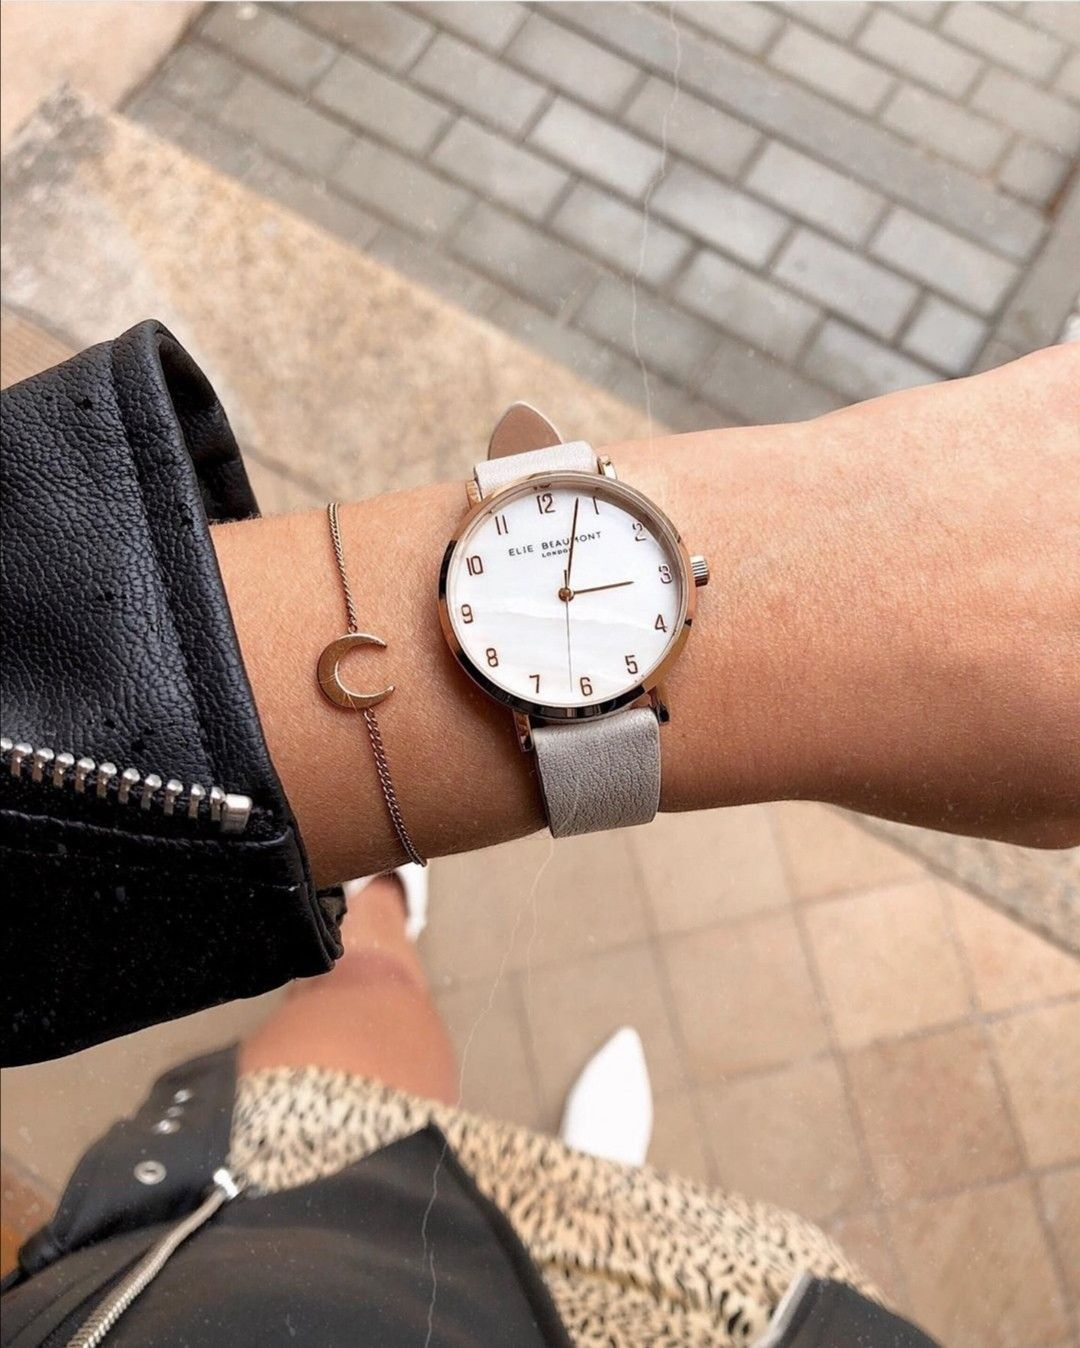 Pin by Chloe on lookbook Fashion watches, Online